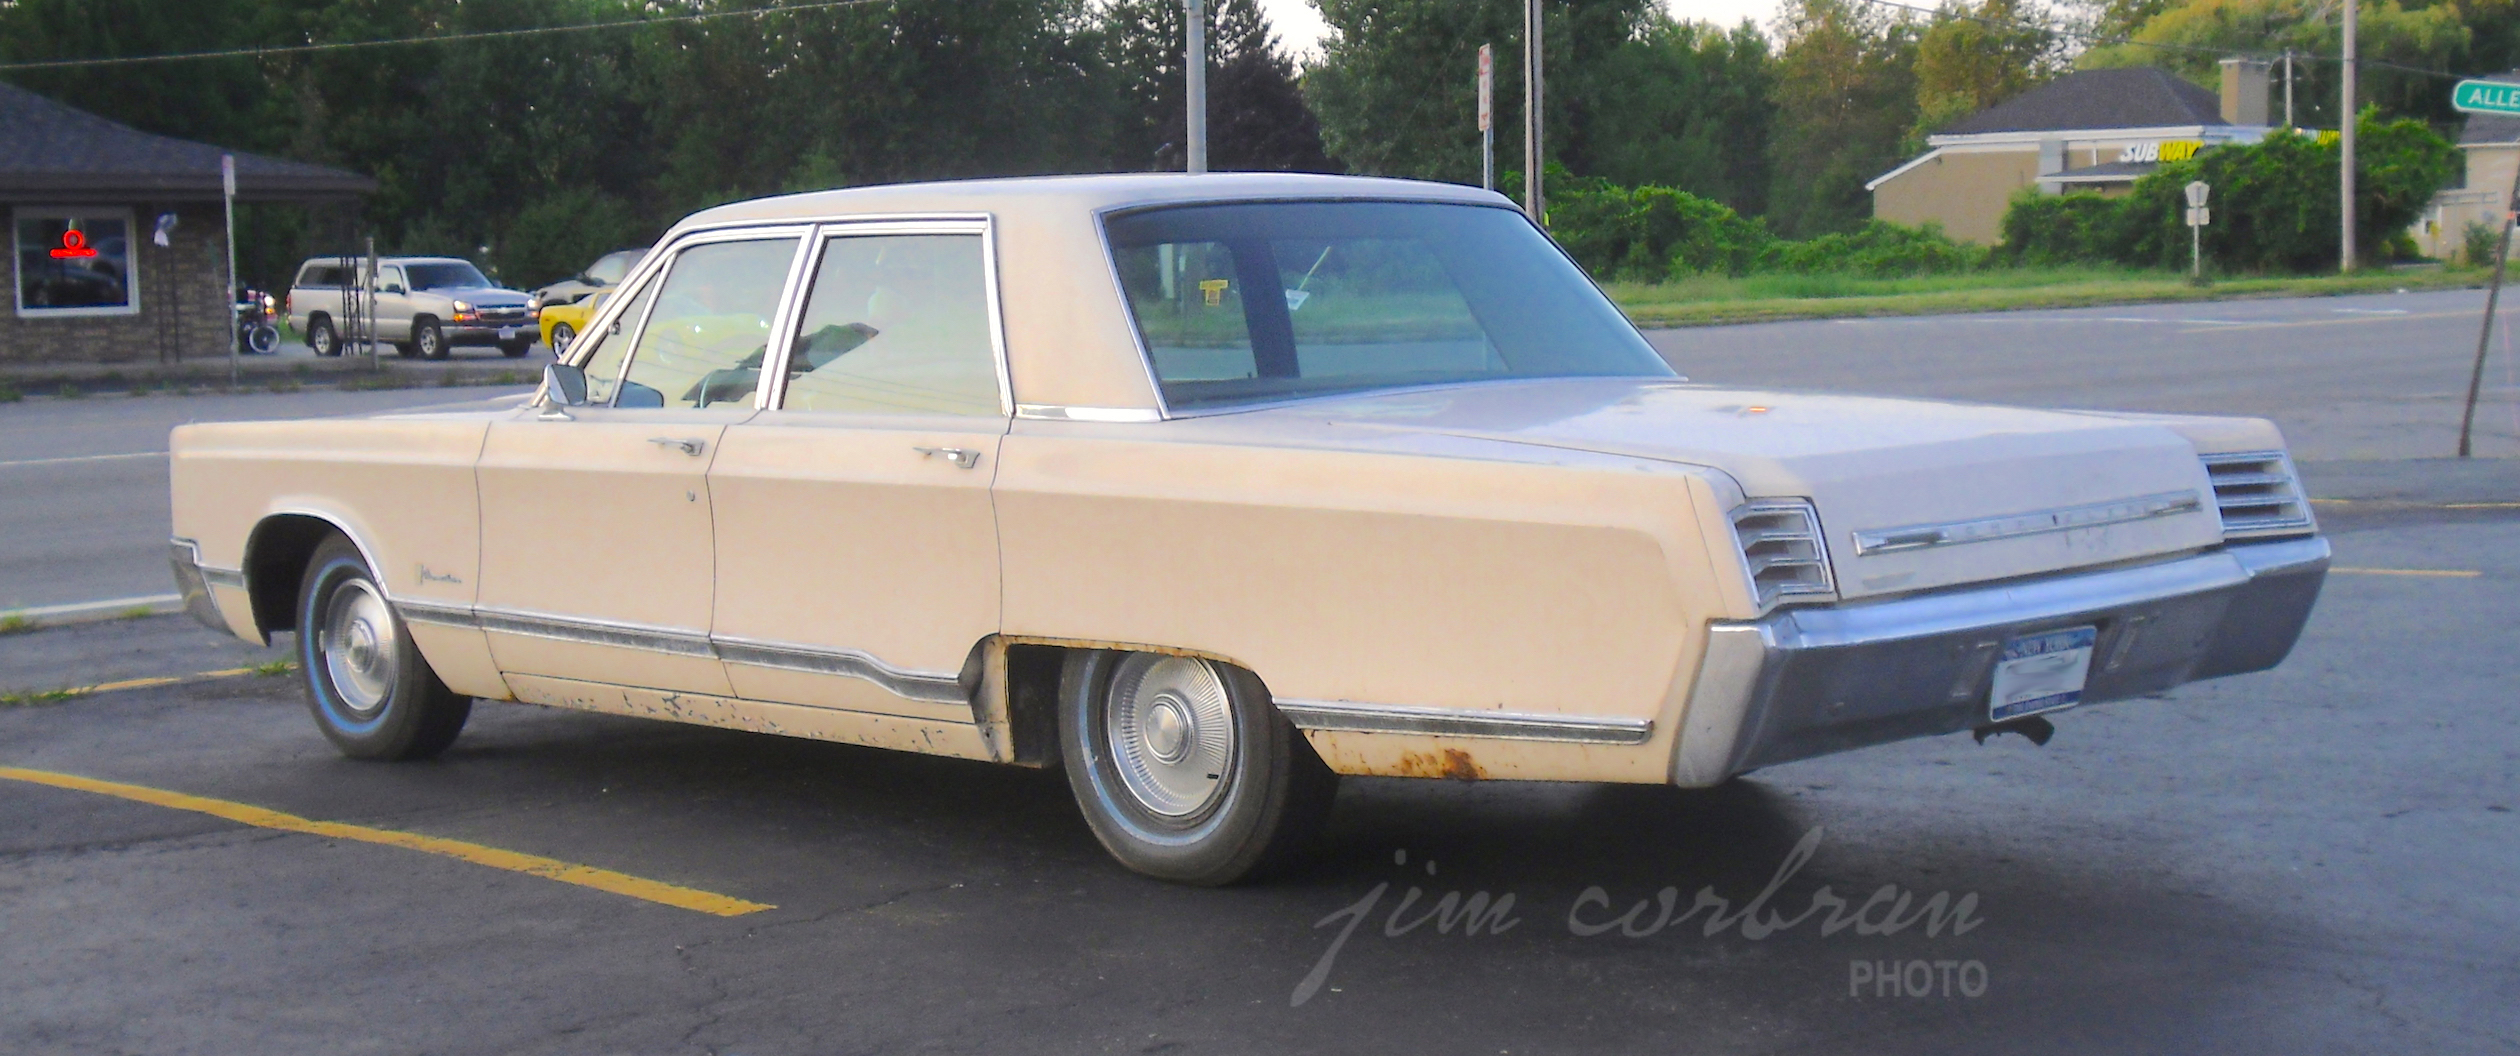 RealRides of WNY - 1967 Chrysler